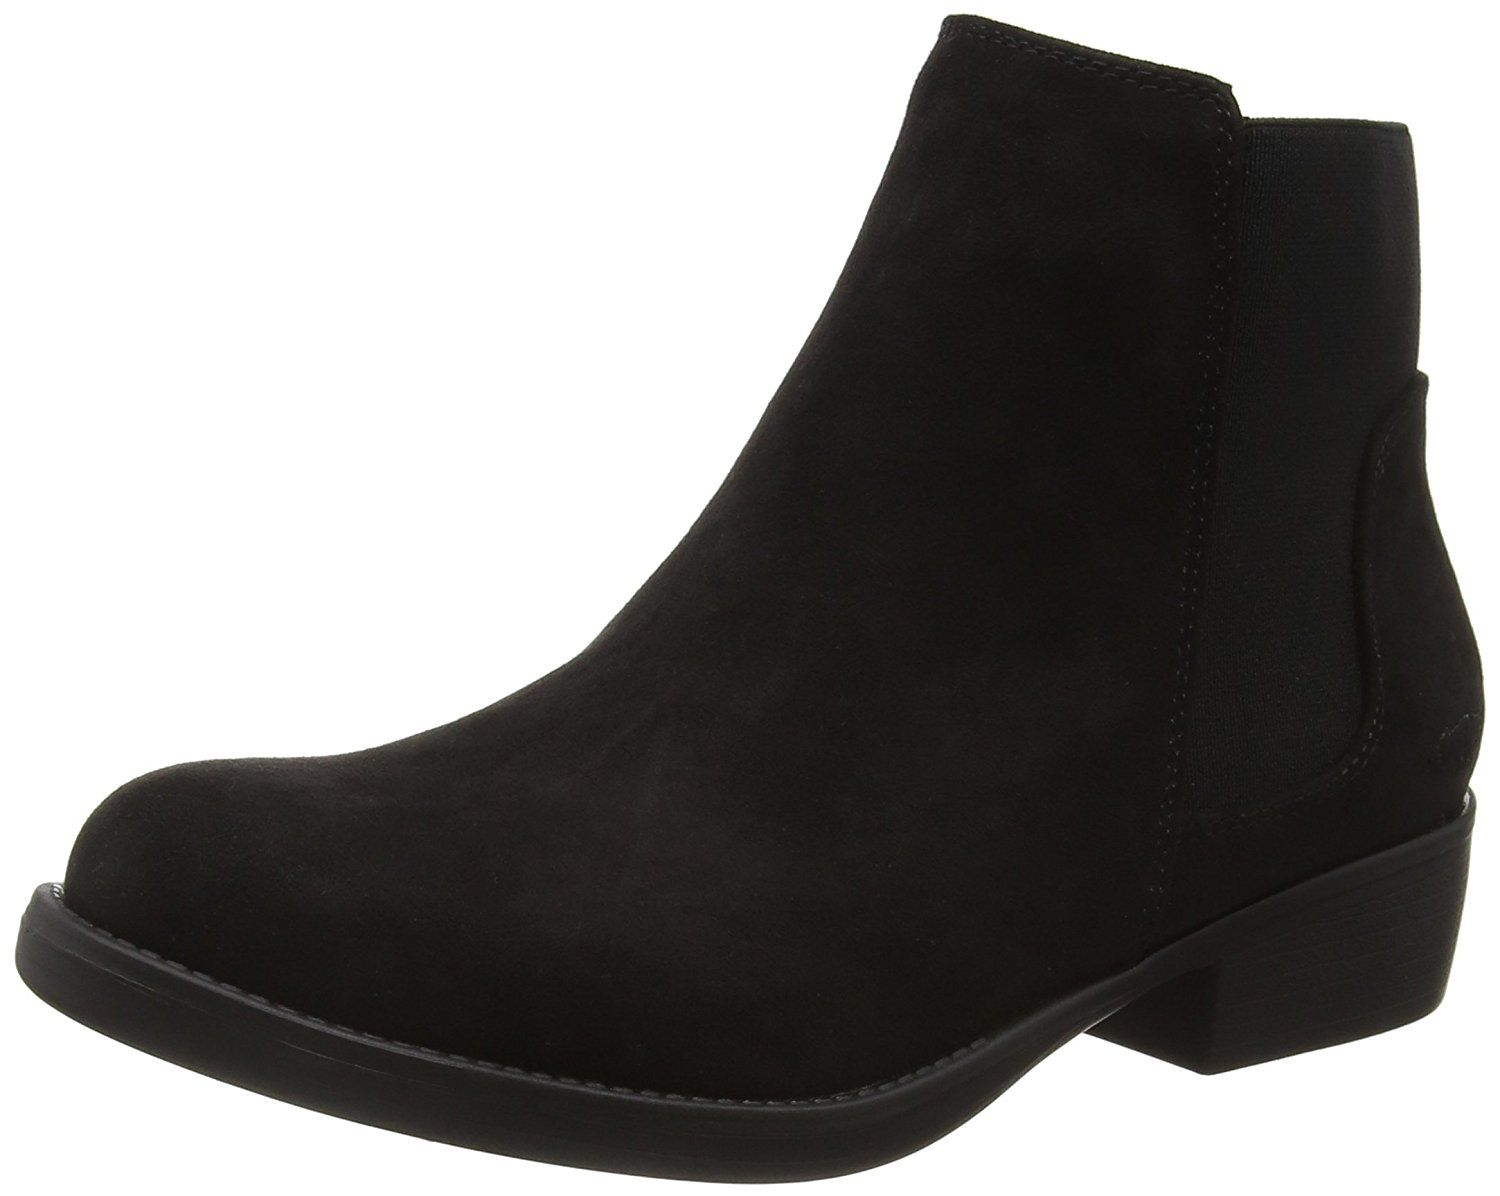 Rocket Dog Women's Topeka Chelsea Boots | Boots, Leather